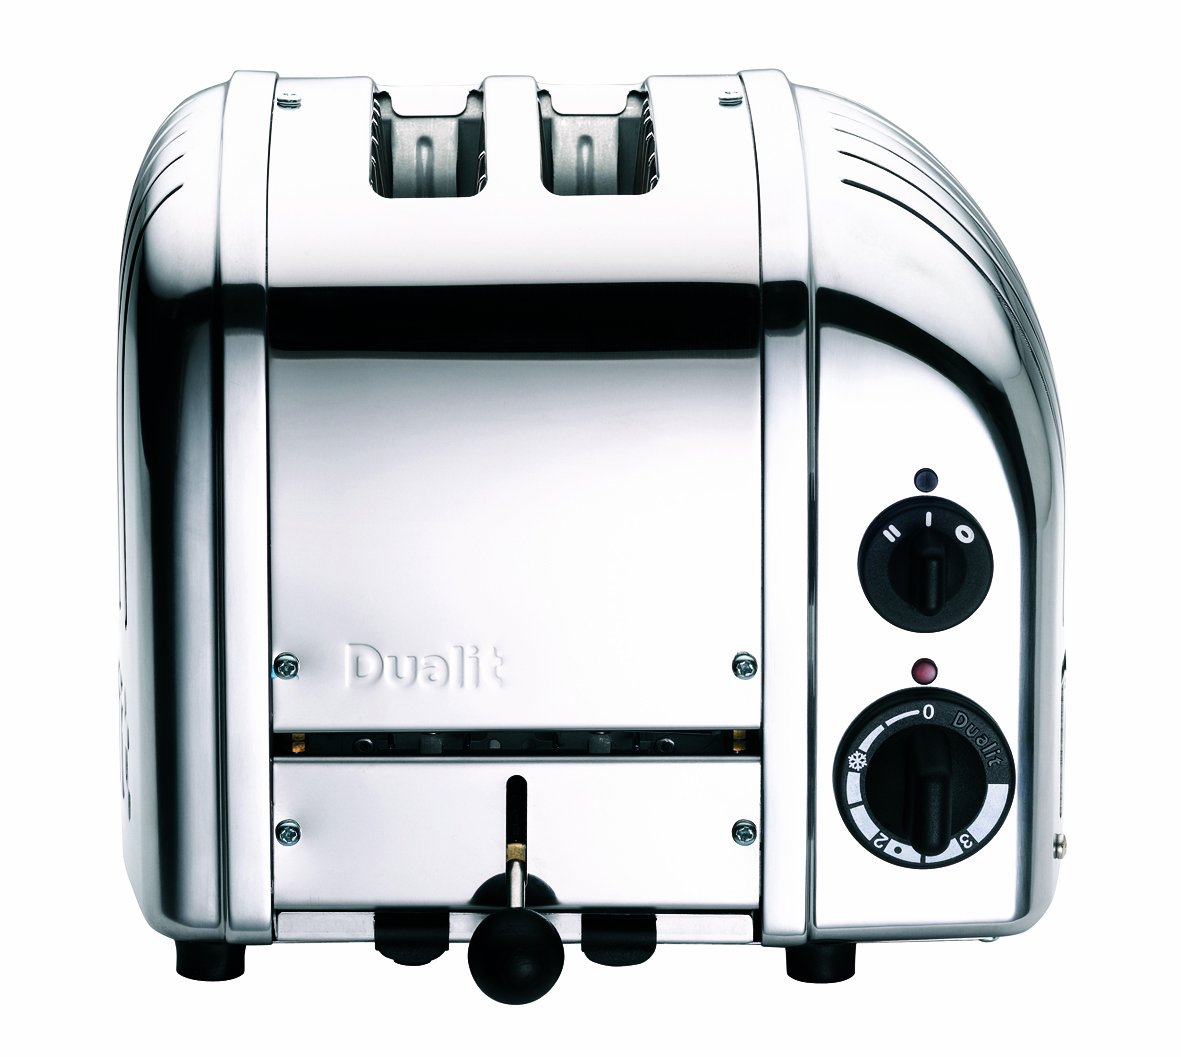 Dualit Classic Toasters